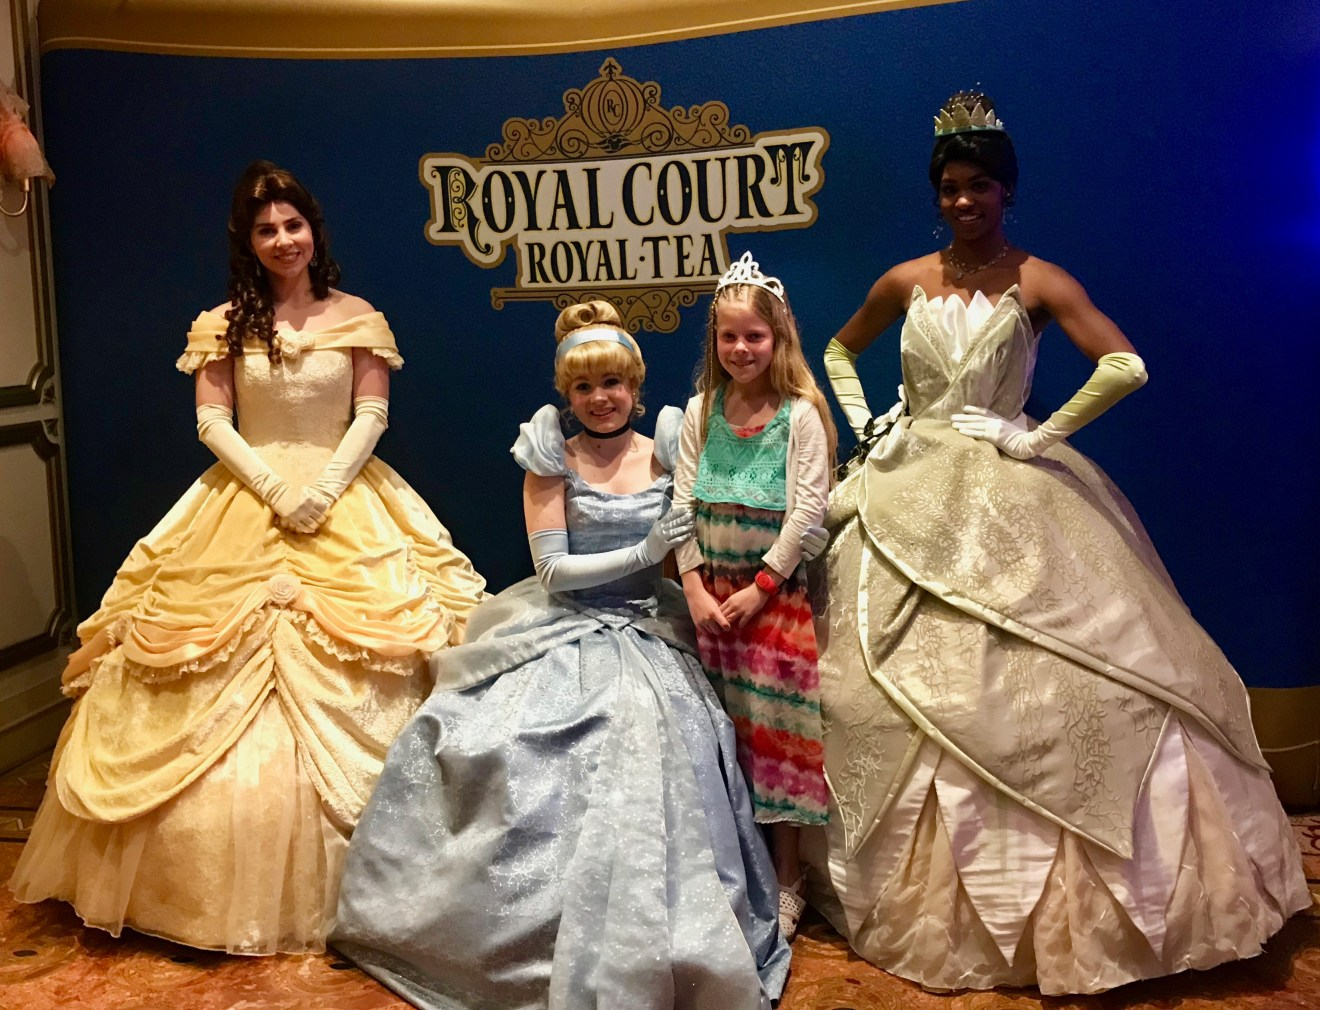 Royal Court Royal Tea picture with princesses